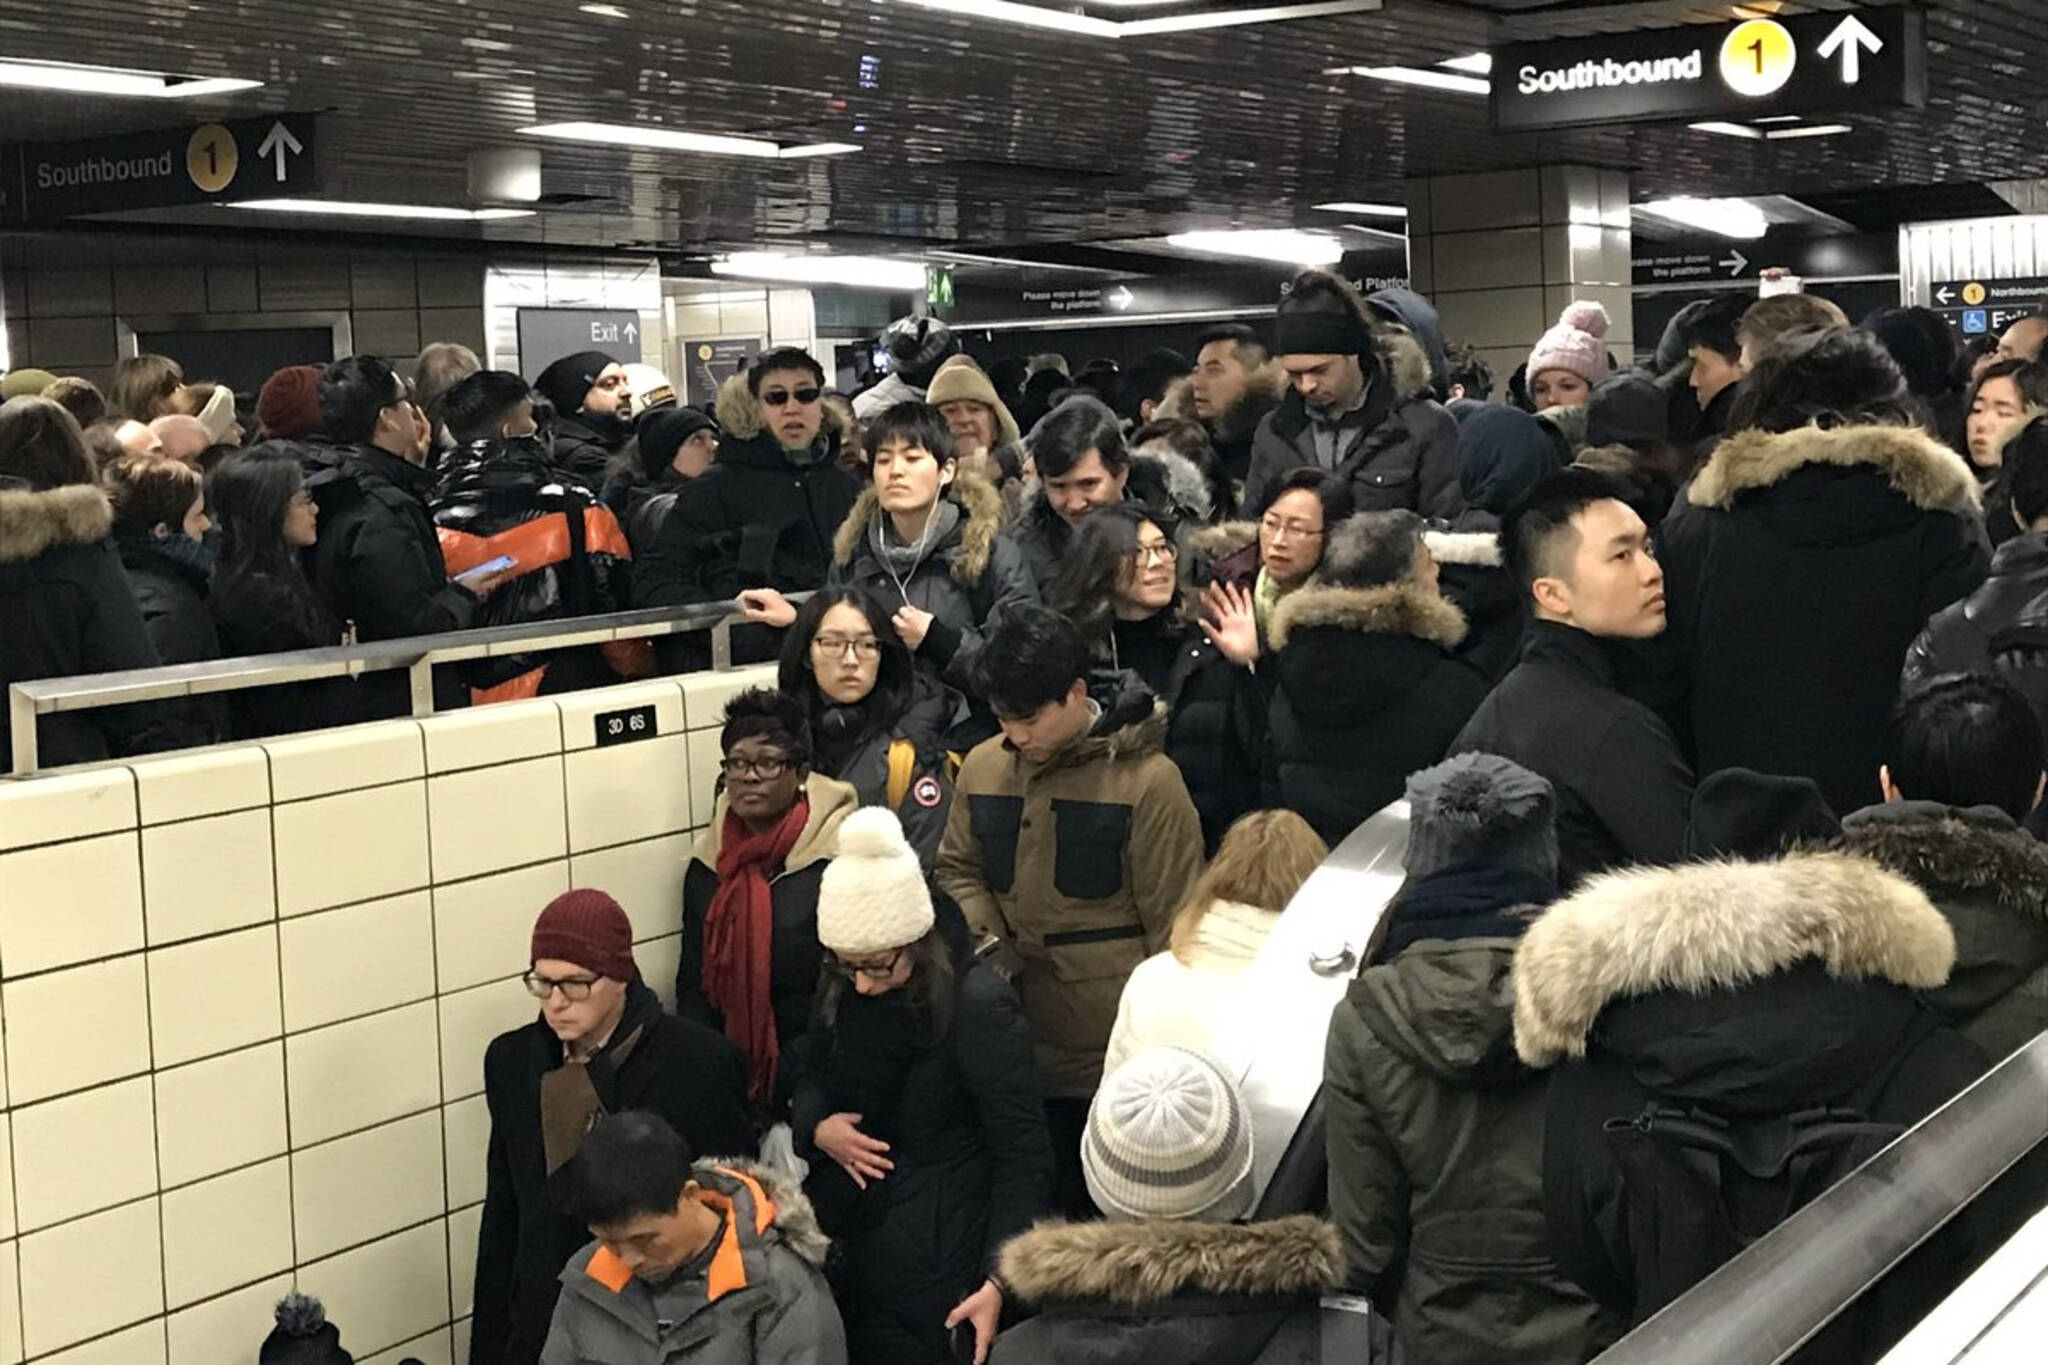 TTC crowding safety